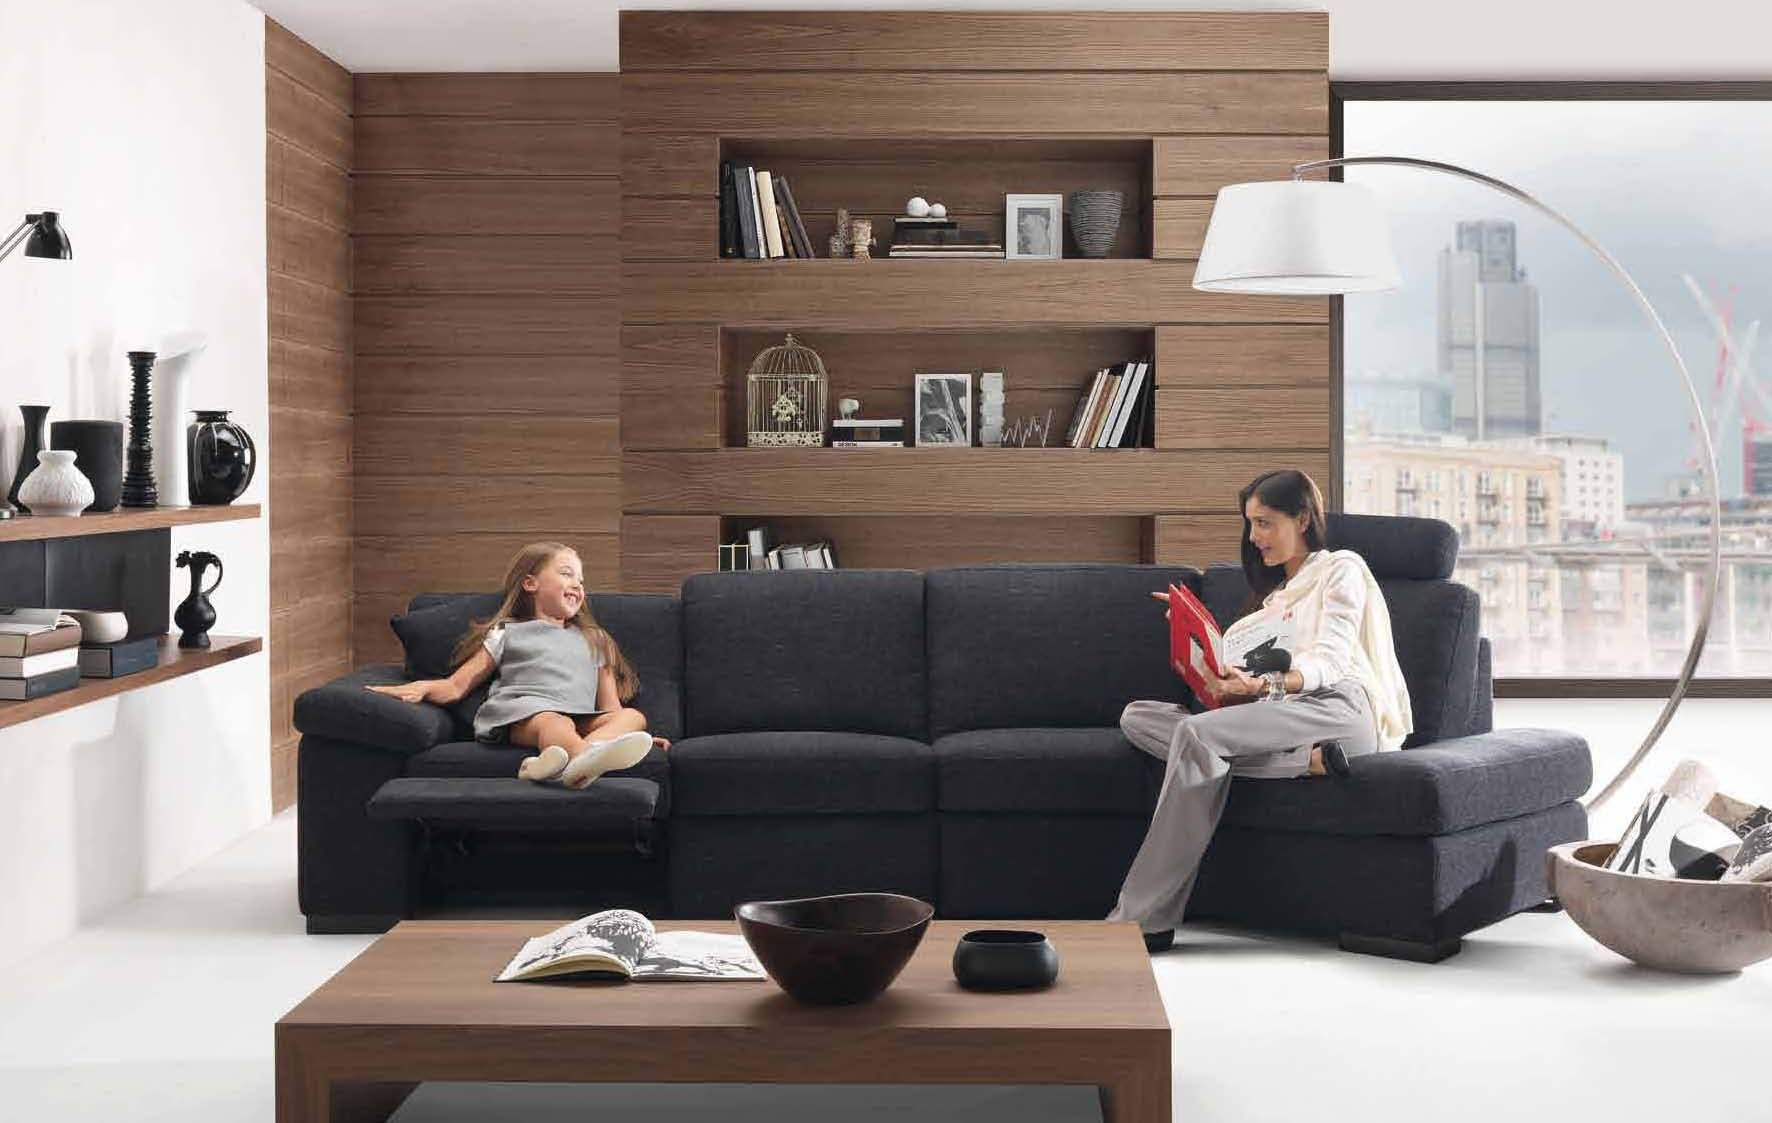 Ordinaire Minimalist Living Room Modern And Comfortable Retro Furniture Minimalist  Living Room Styles By Natuzzi Design Home